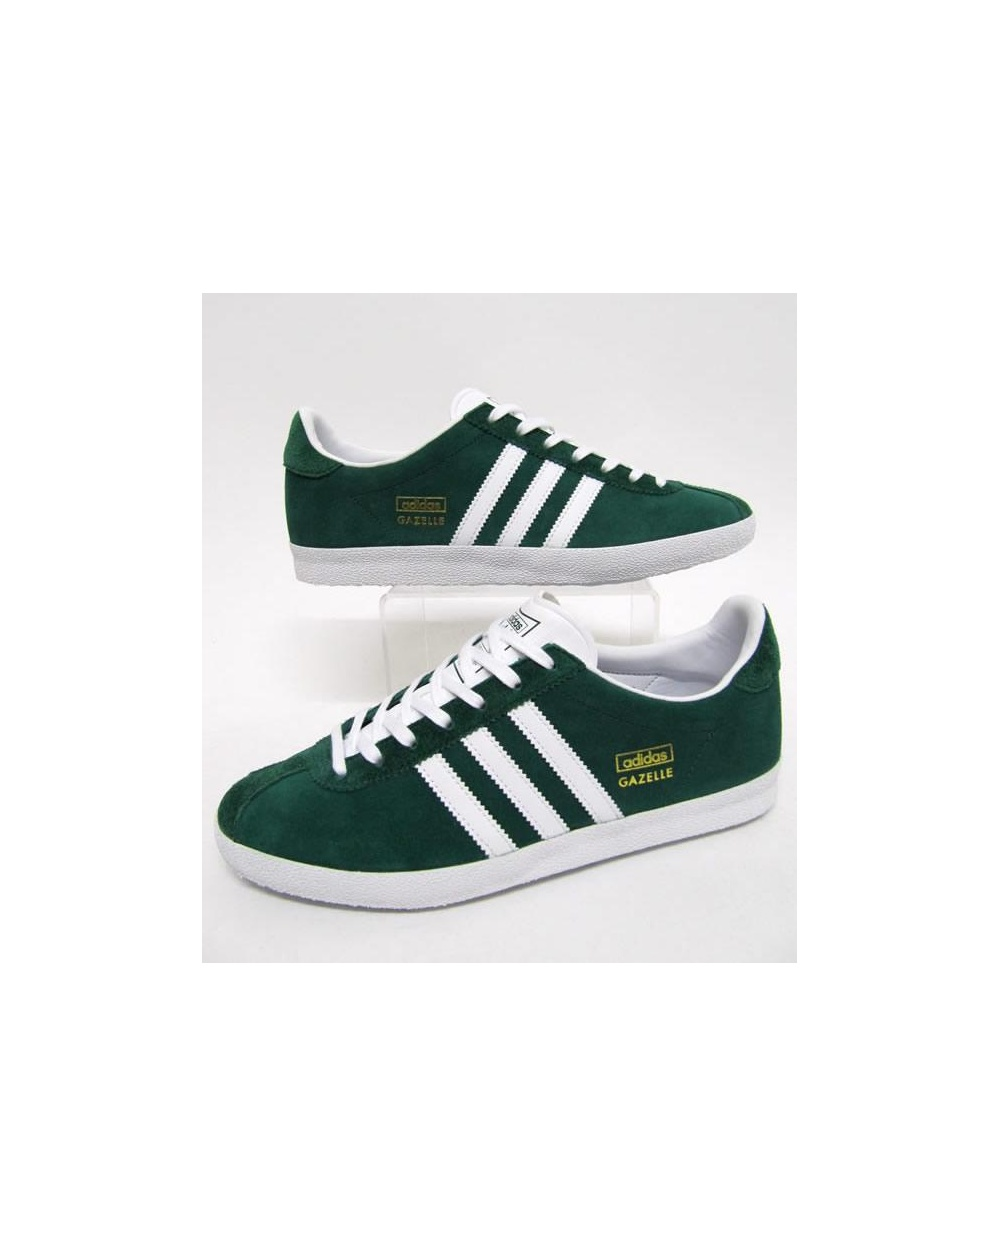 Cheap adidas gazelle shoes women Adidas Sneakers Online